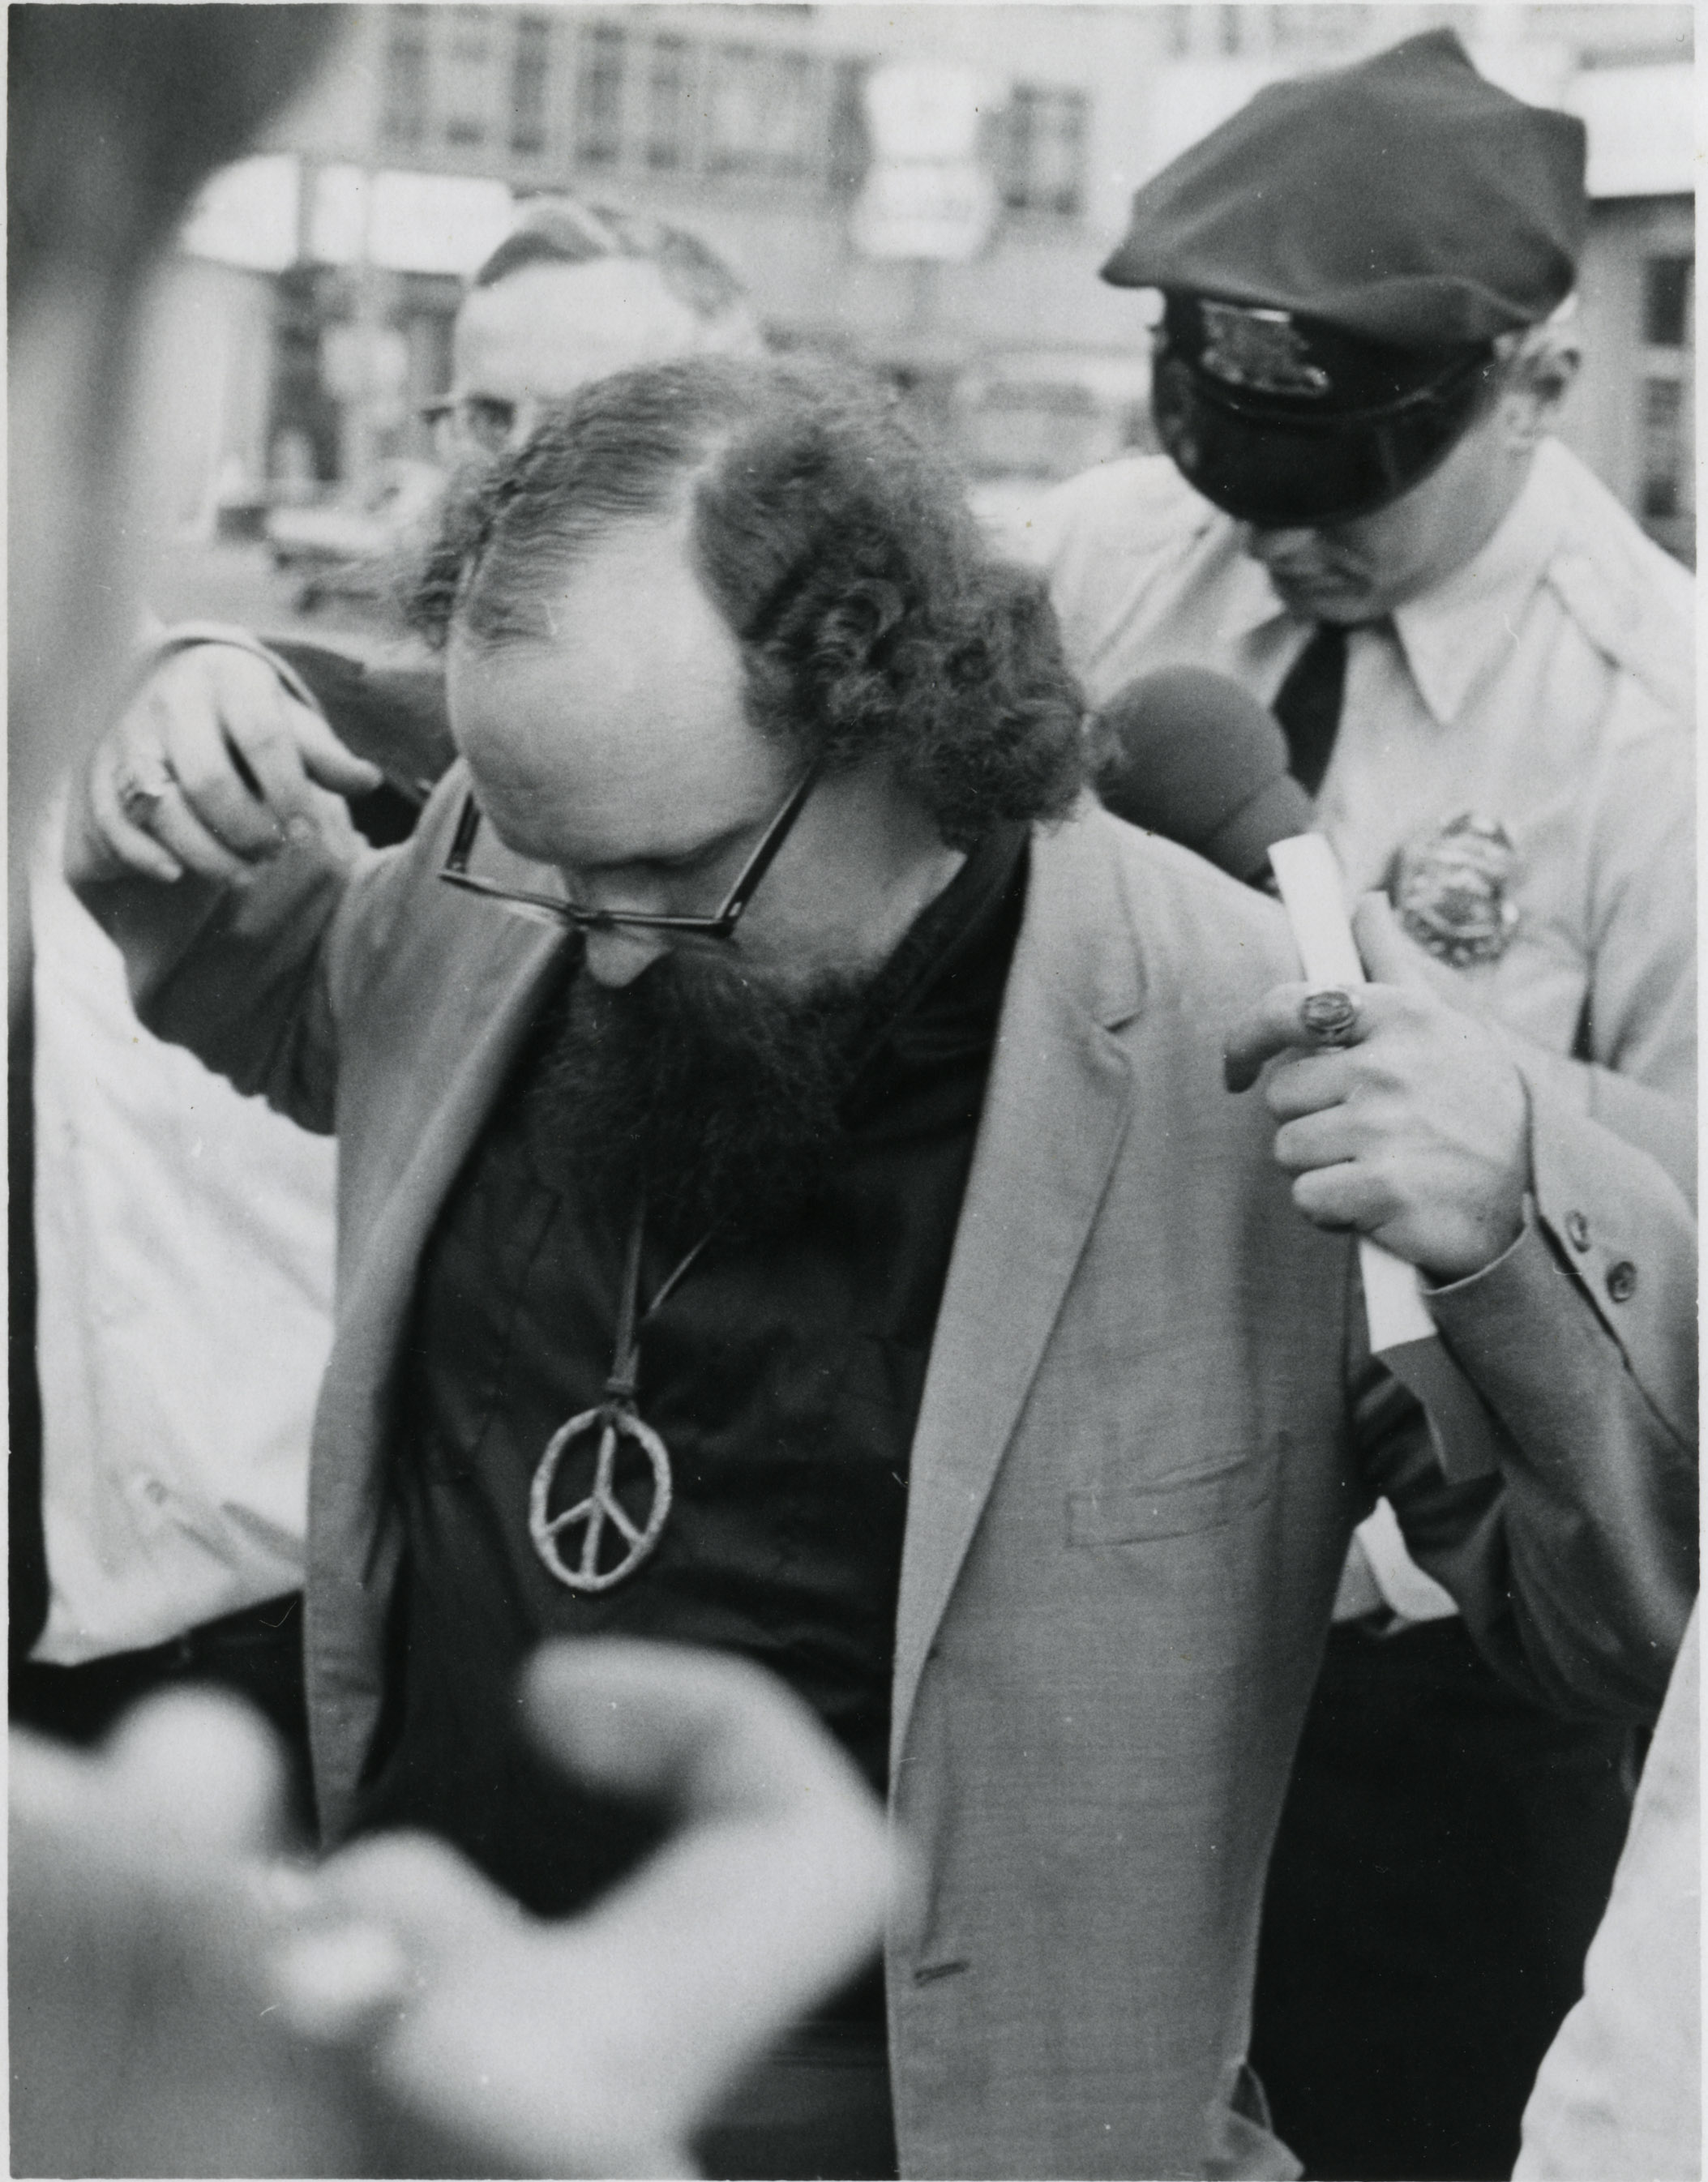 Image of Arrest of Jon Higgenbotham (Milwaukee 14), Sept. 24, 1968